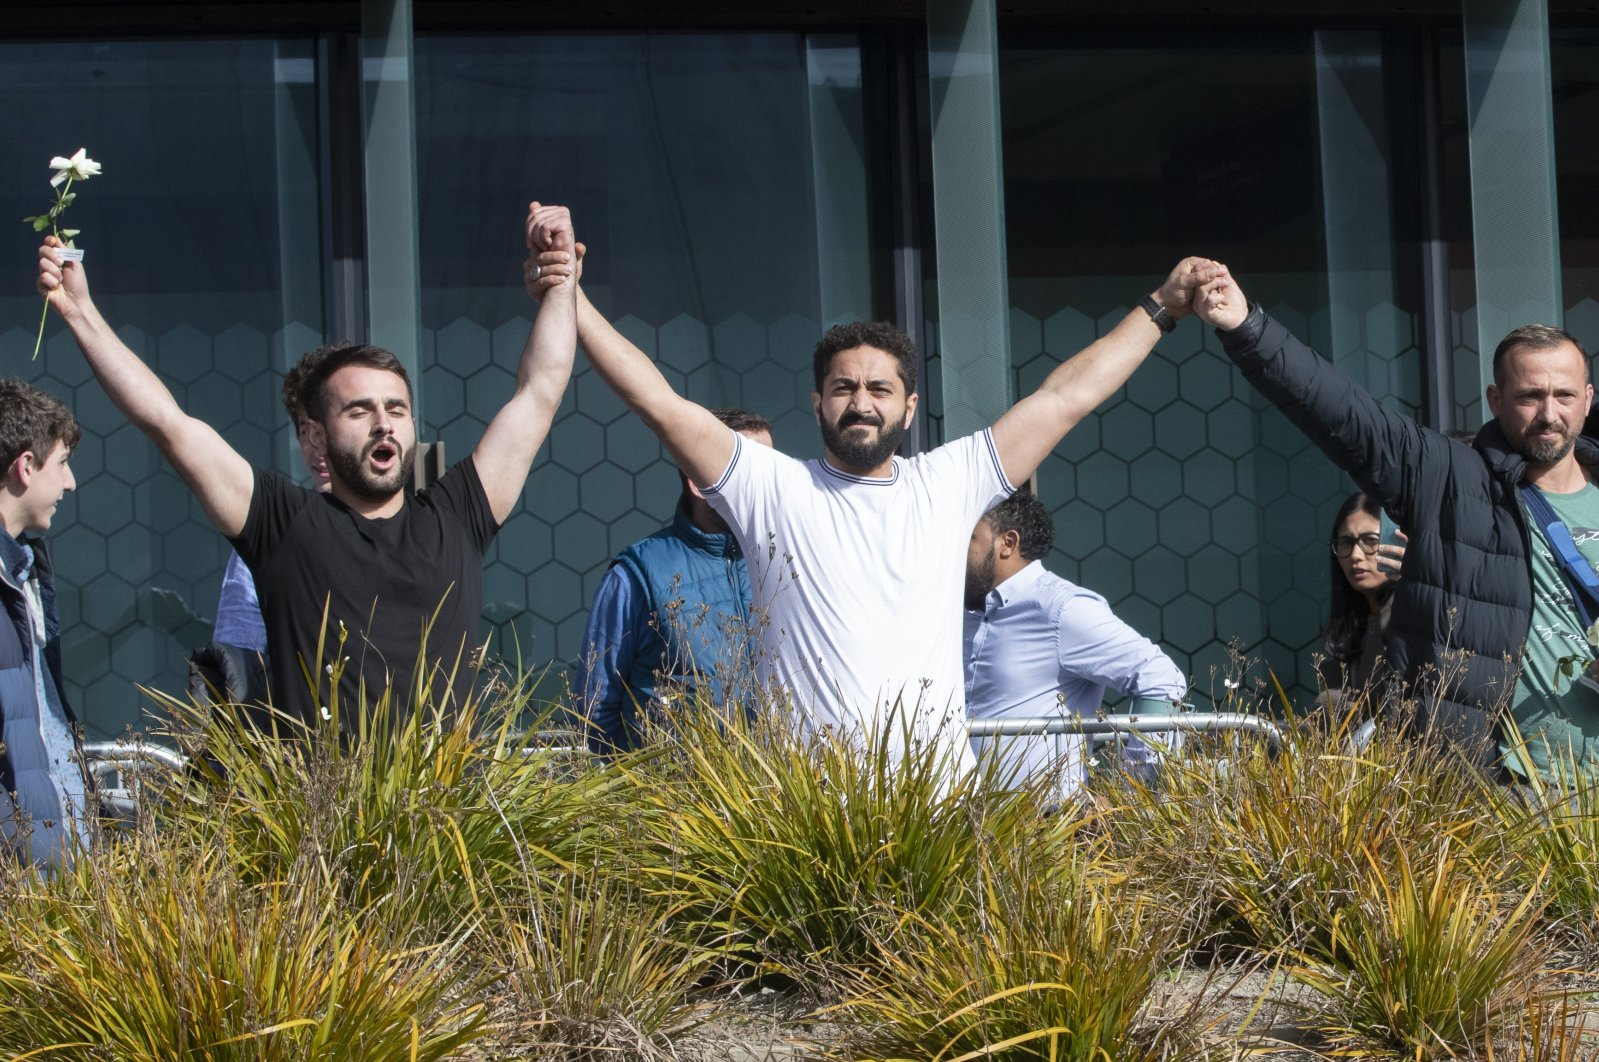 Mosque shooting survivors (L to R) Mustafa Boztaş, Wassail Daragmih and Temel Ataçocuğu celebrate as they leave the Christchurch High Court after the sentencing hearing for assailant Brenton Tarrant, in Christchurch, New Zealand, Aug. 27, 2020. (AP Photo)